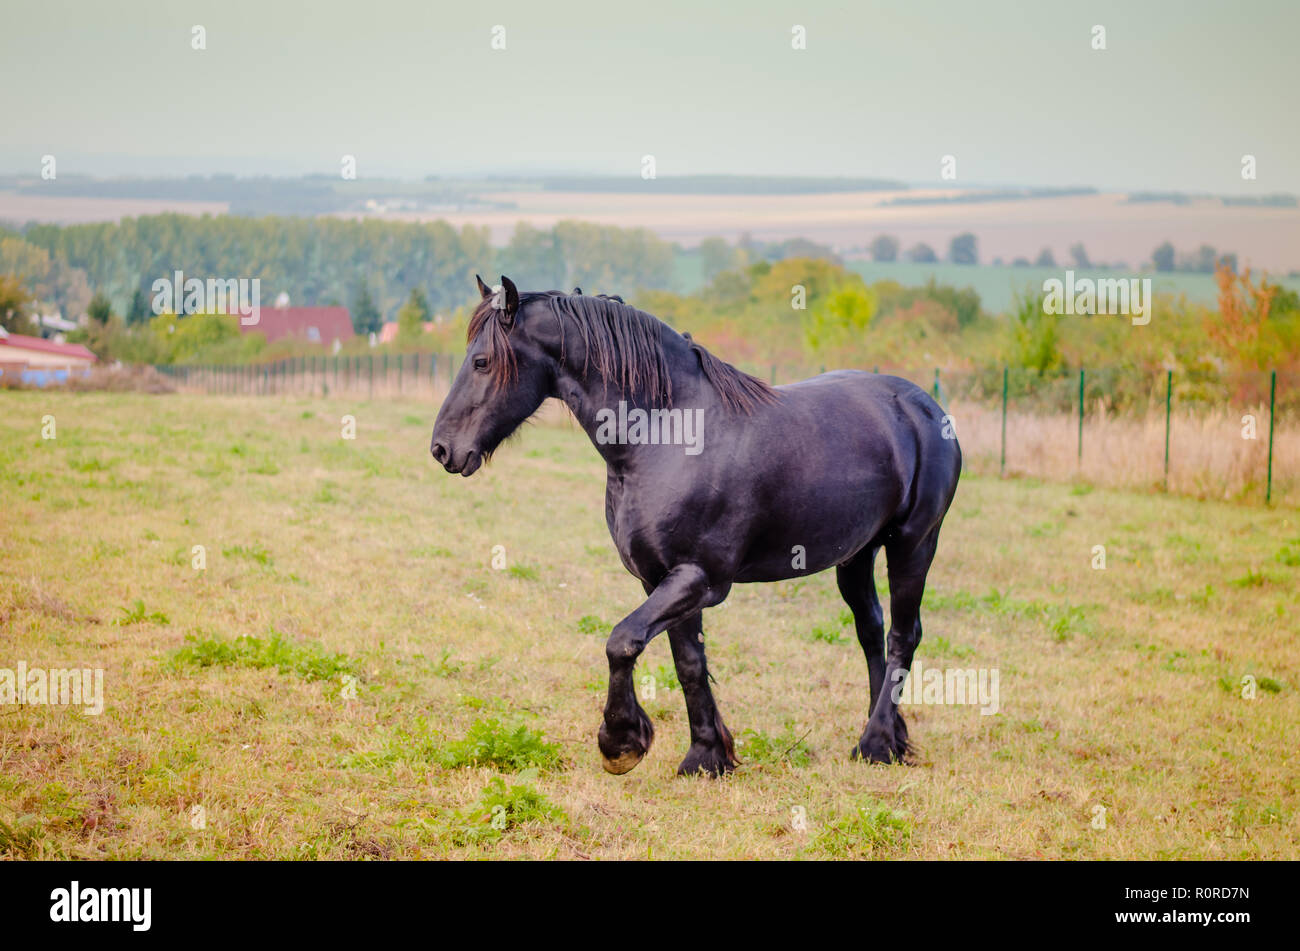 Beautiful Black Horse Posing In The Farm Stock Photo Alamy